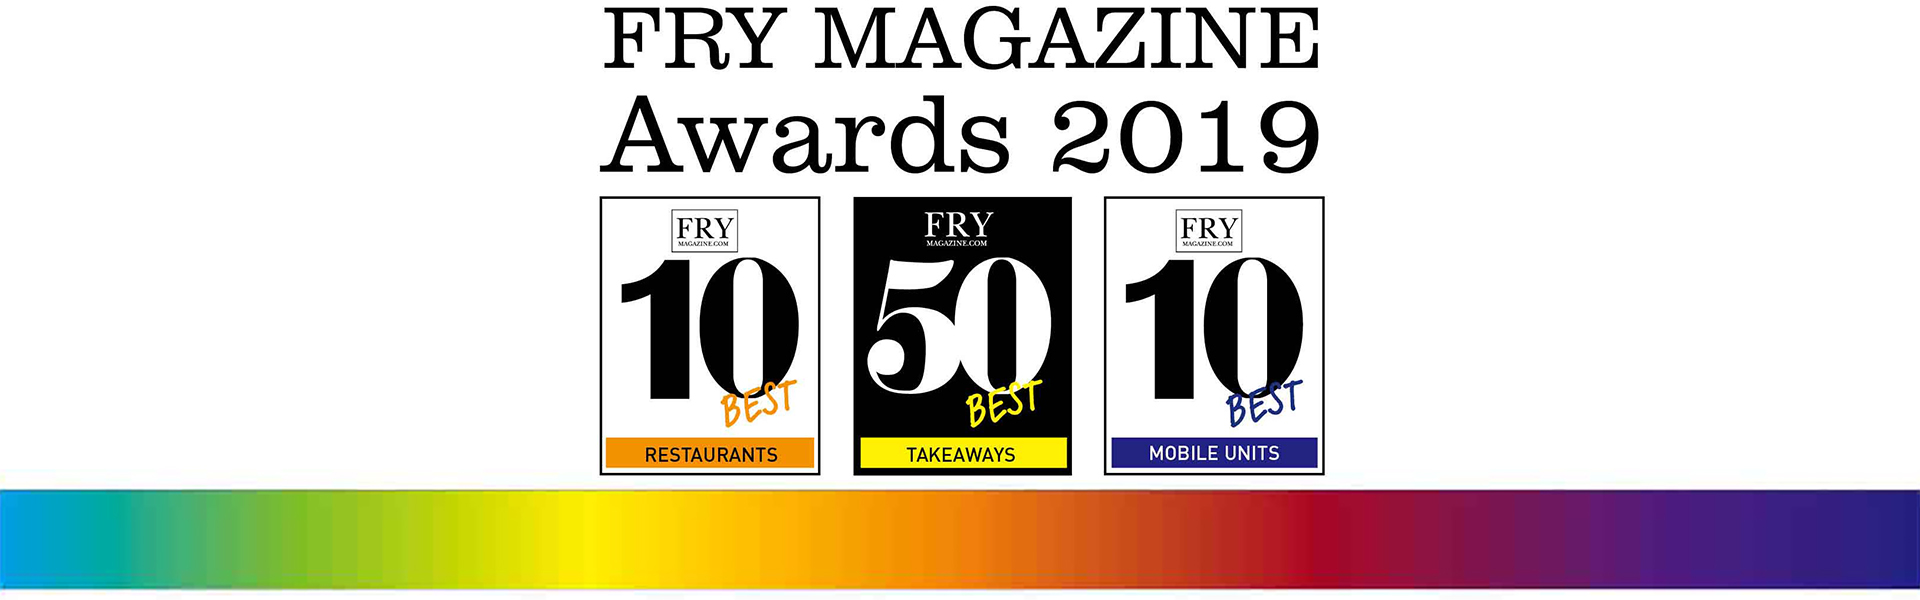 Fry Magazine's Top 50 Award